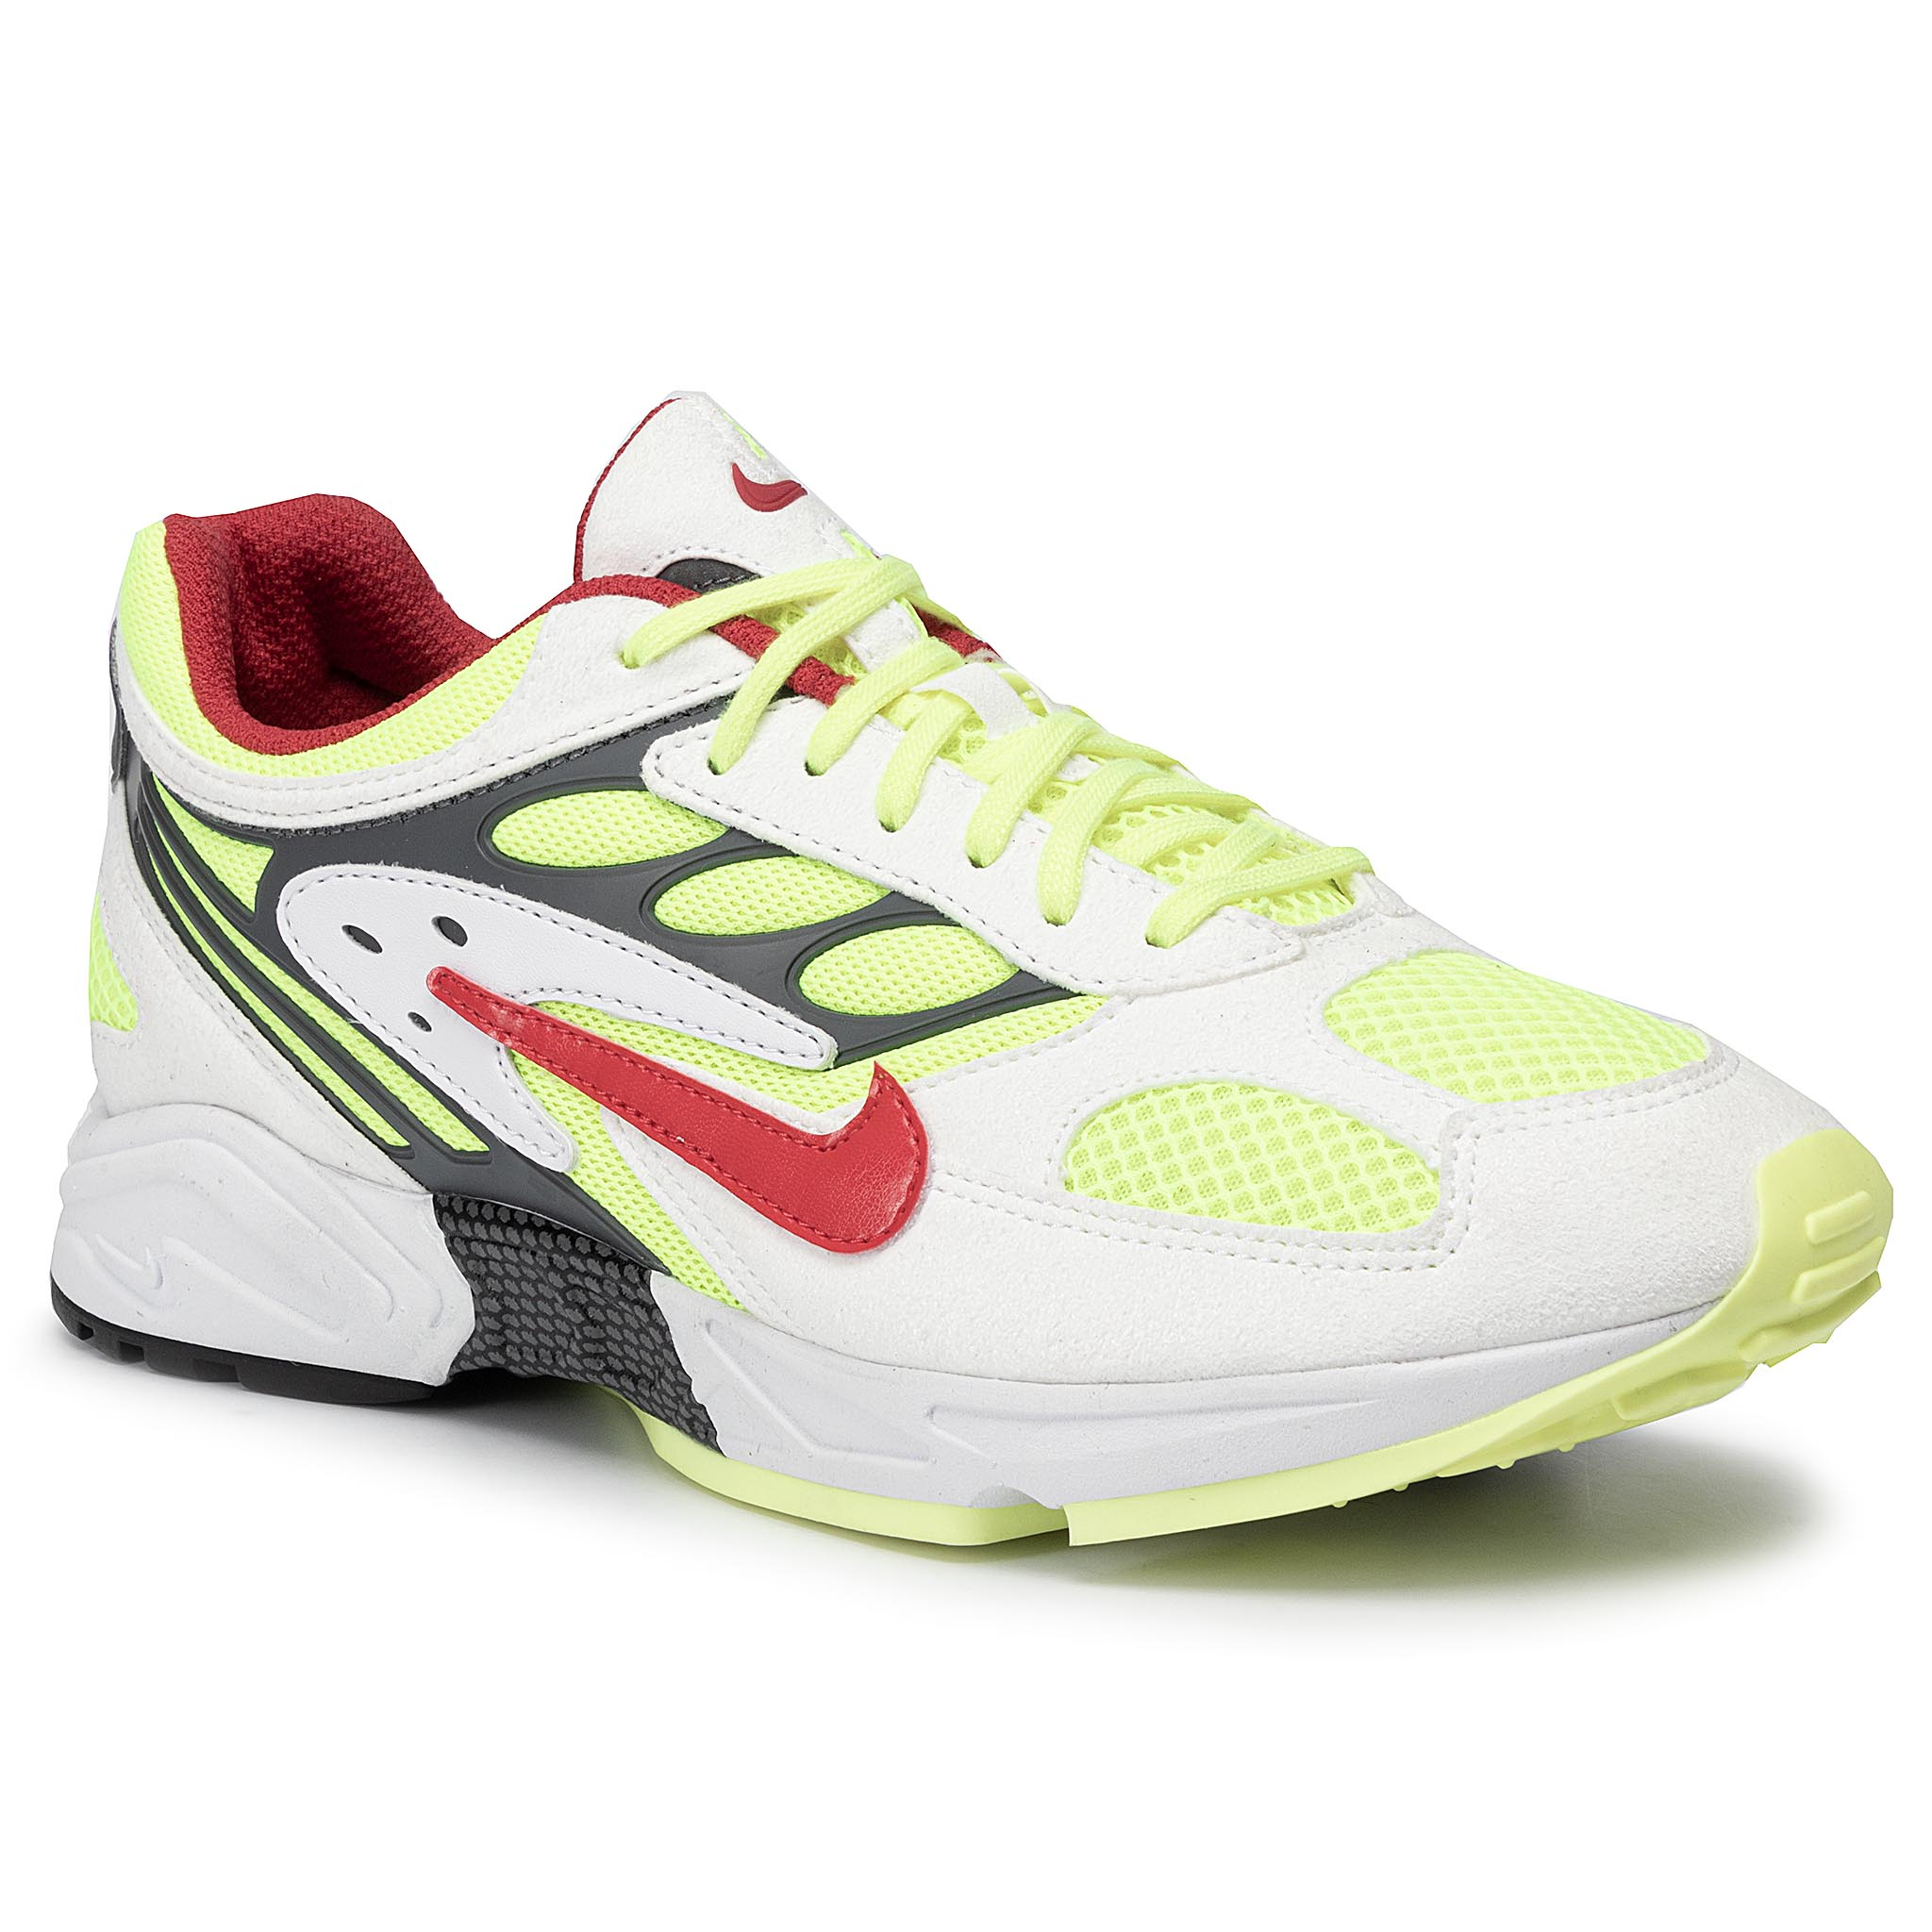 Chaussures NIKE - Air Ghost Racer AT5410 100 White/Atom Red/Neon Yellow